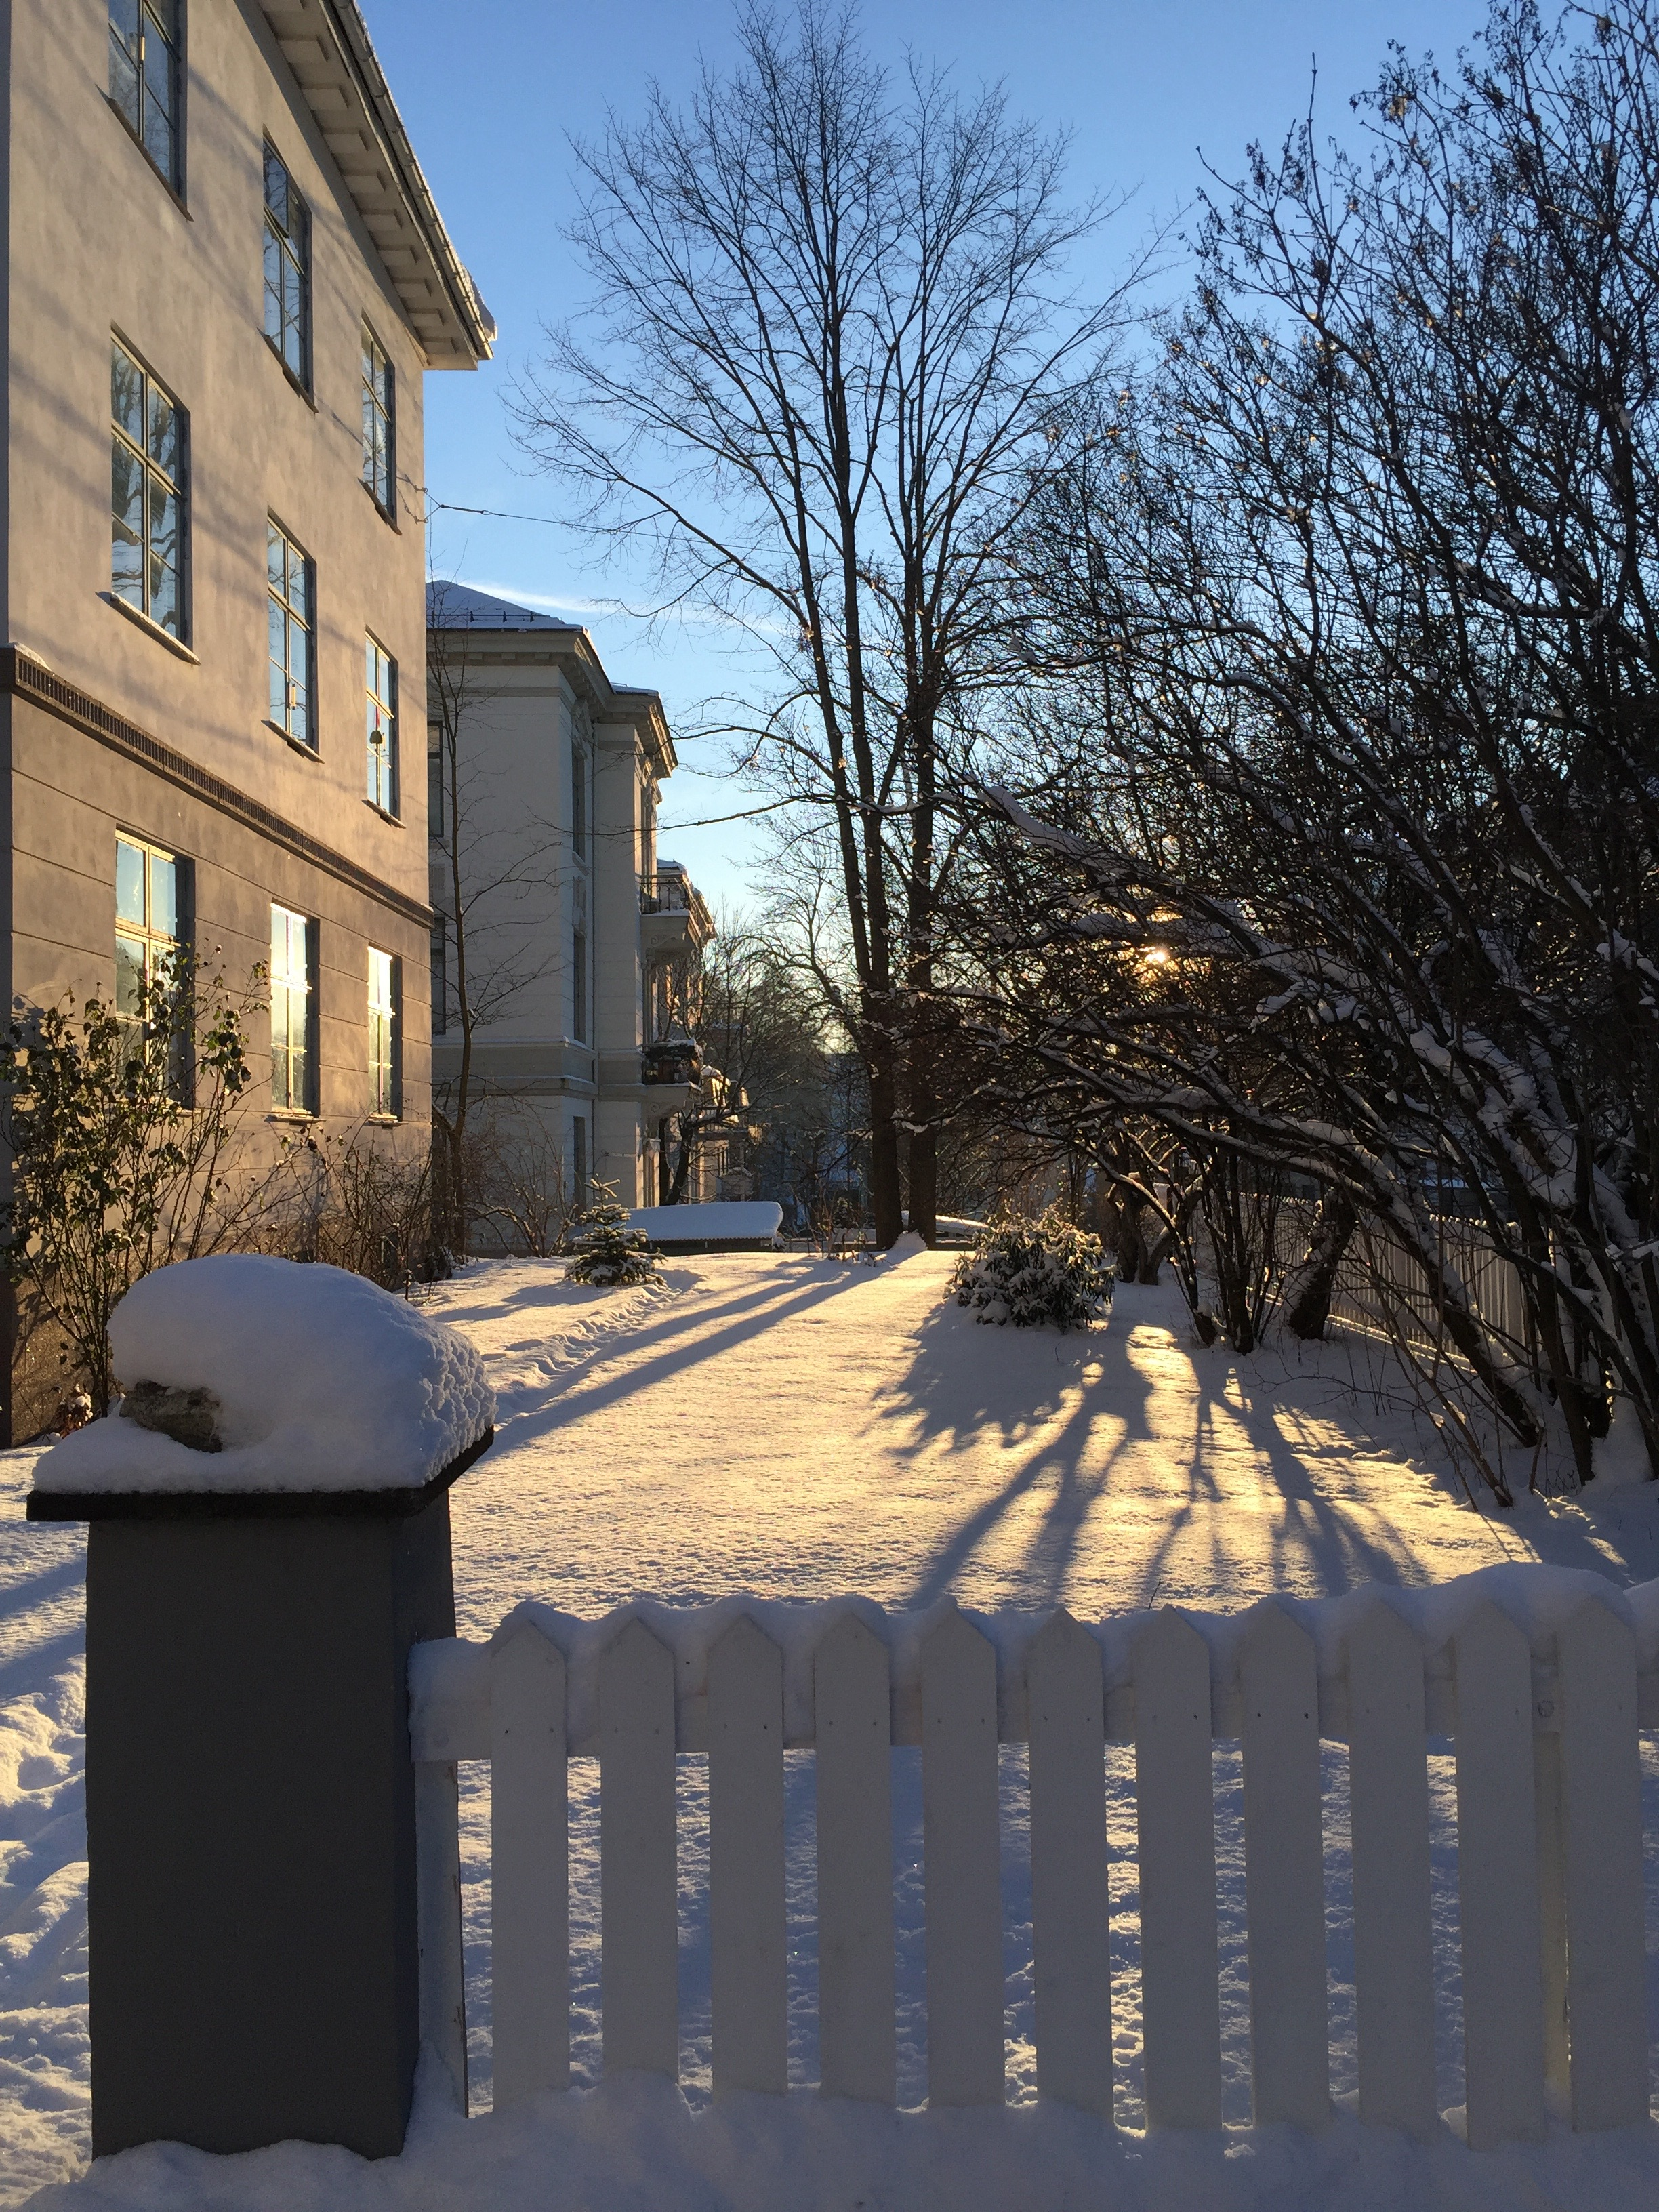 Norway winter - our apartment building